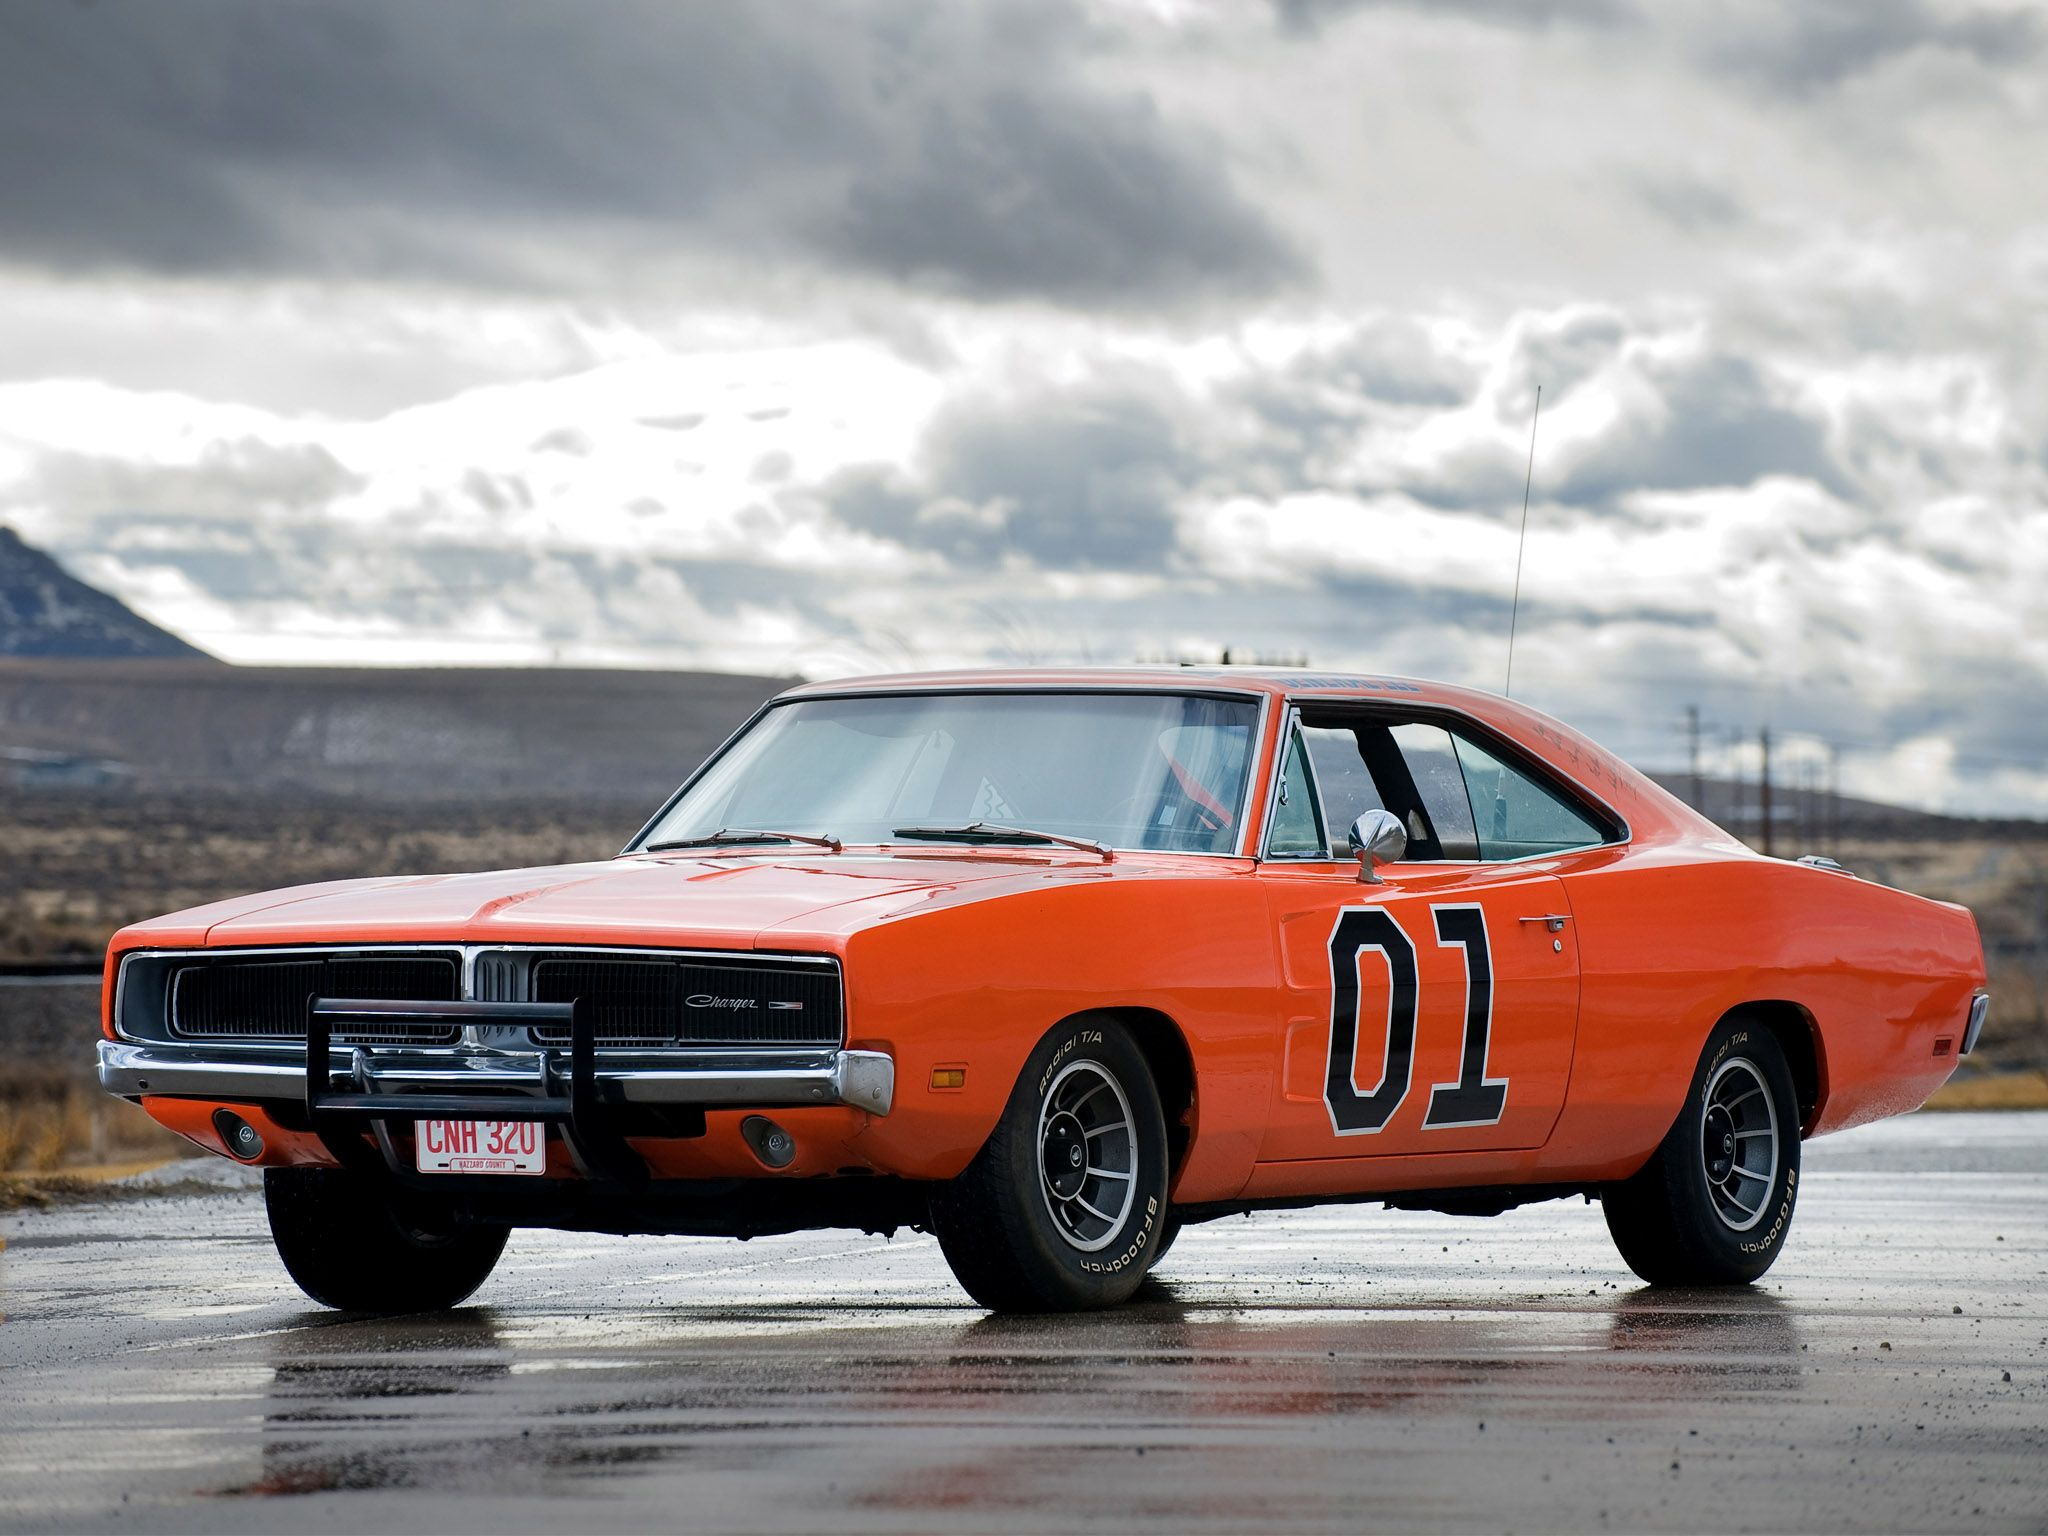 Dodge Charger General Lee 1959 Photo 04 Car In Pictures Car Photo Gallery Dodge Charger Dodge Muscle Cars General Lee